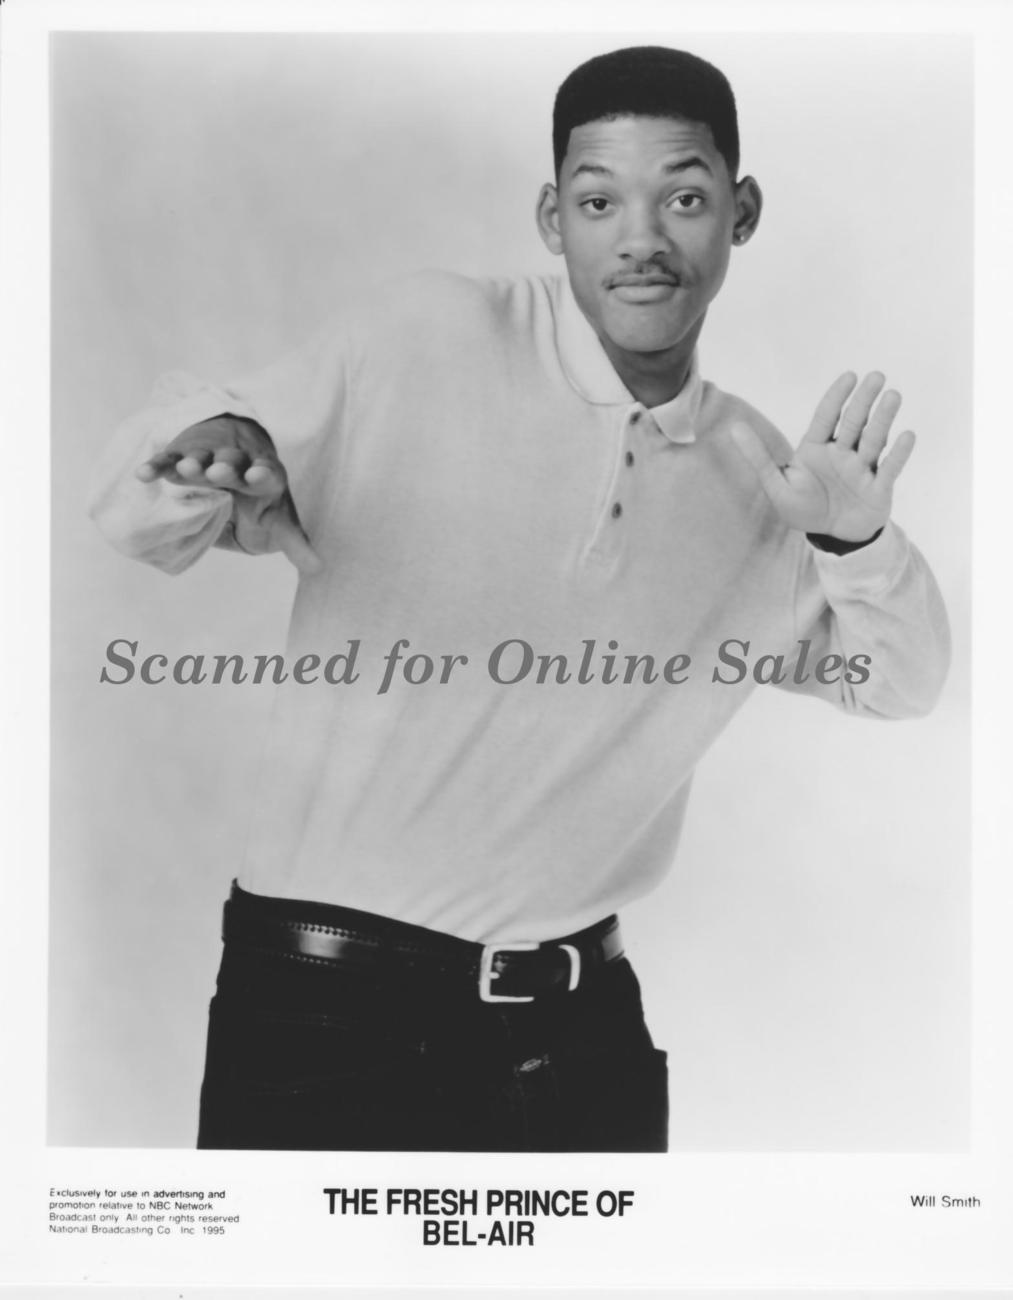 Will Smith The Fresh Prince of Bel-Air 8x10 Photo